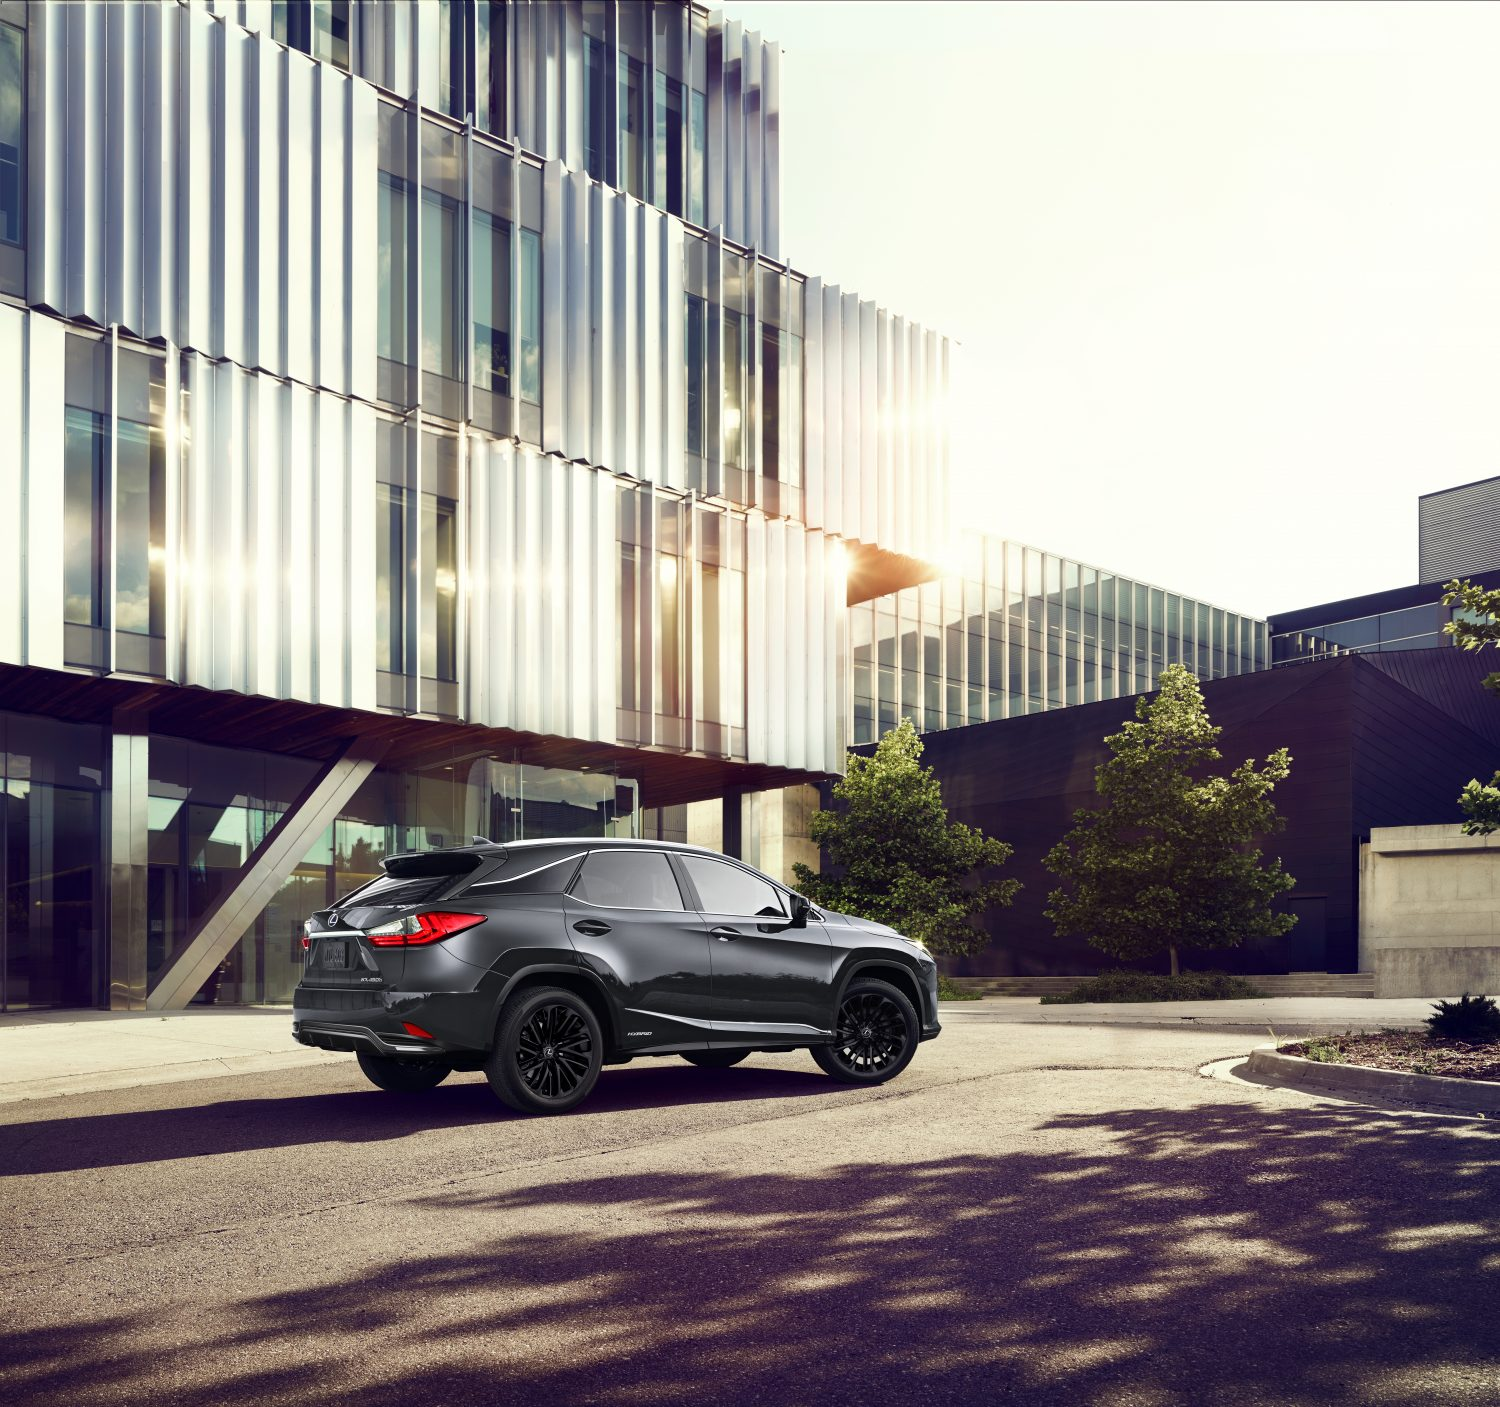 specifications and Price of 2022 Lexus RX Black Line in Nigeria